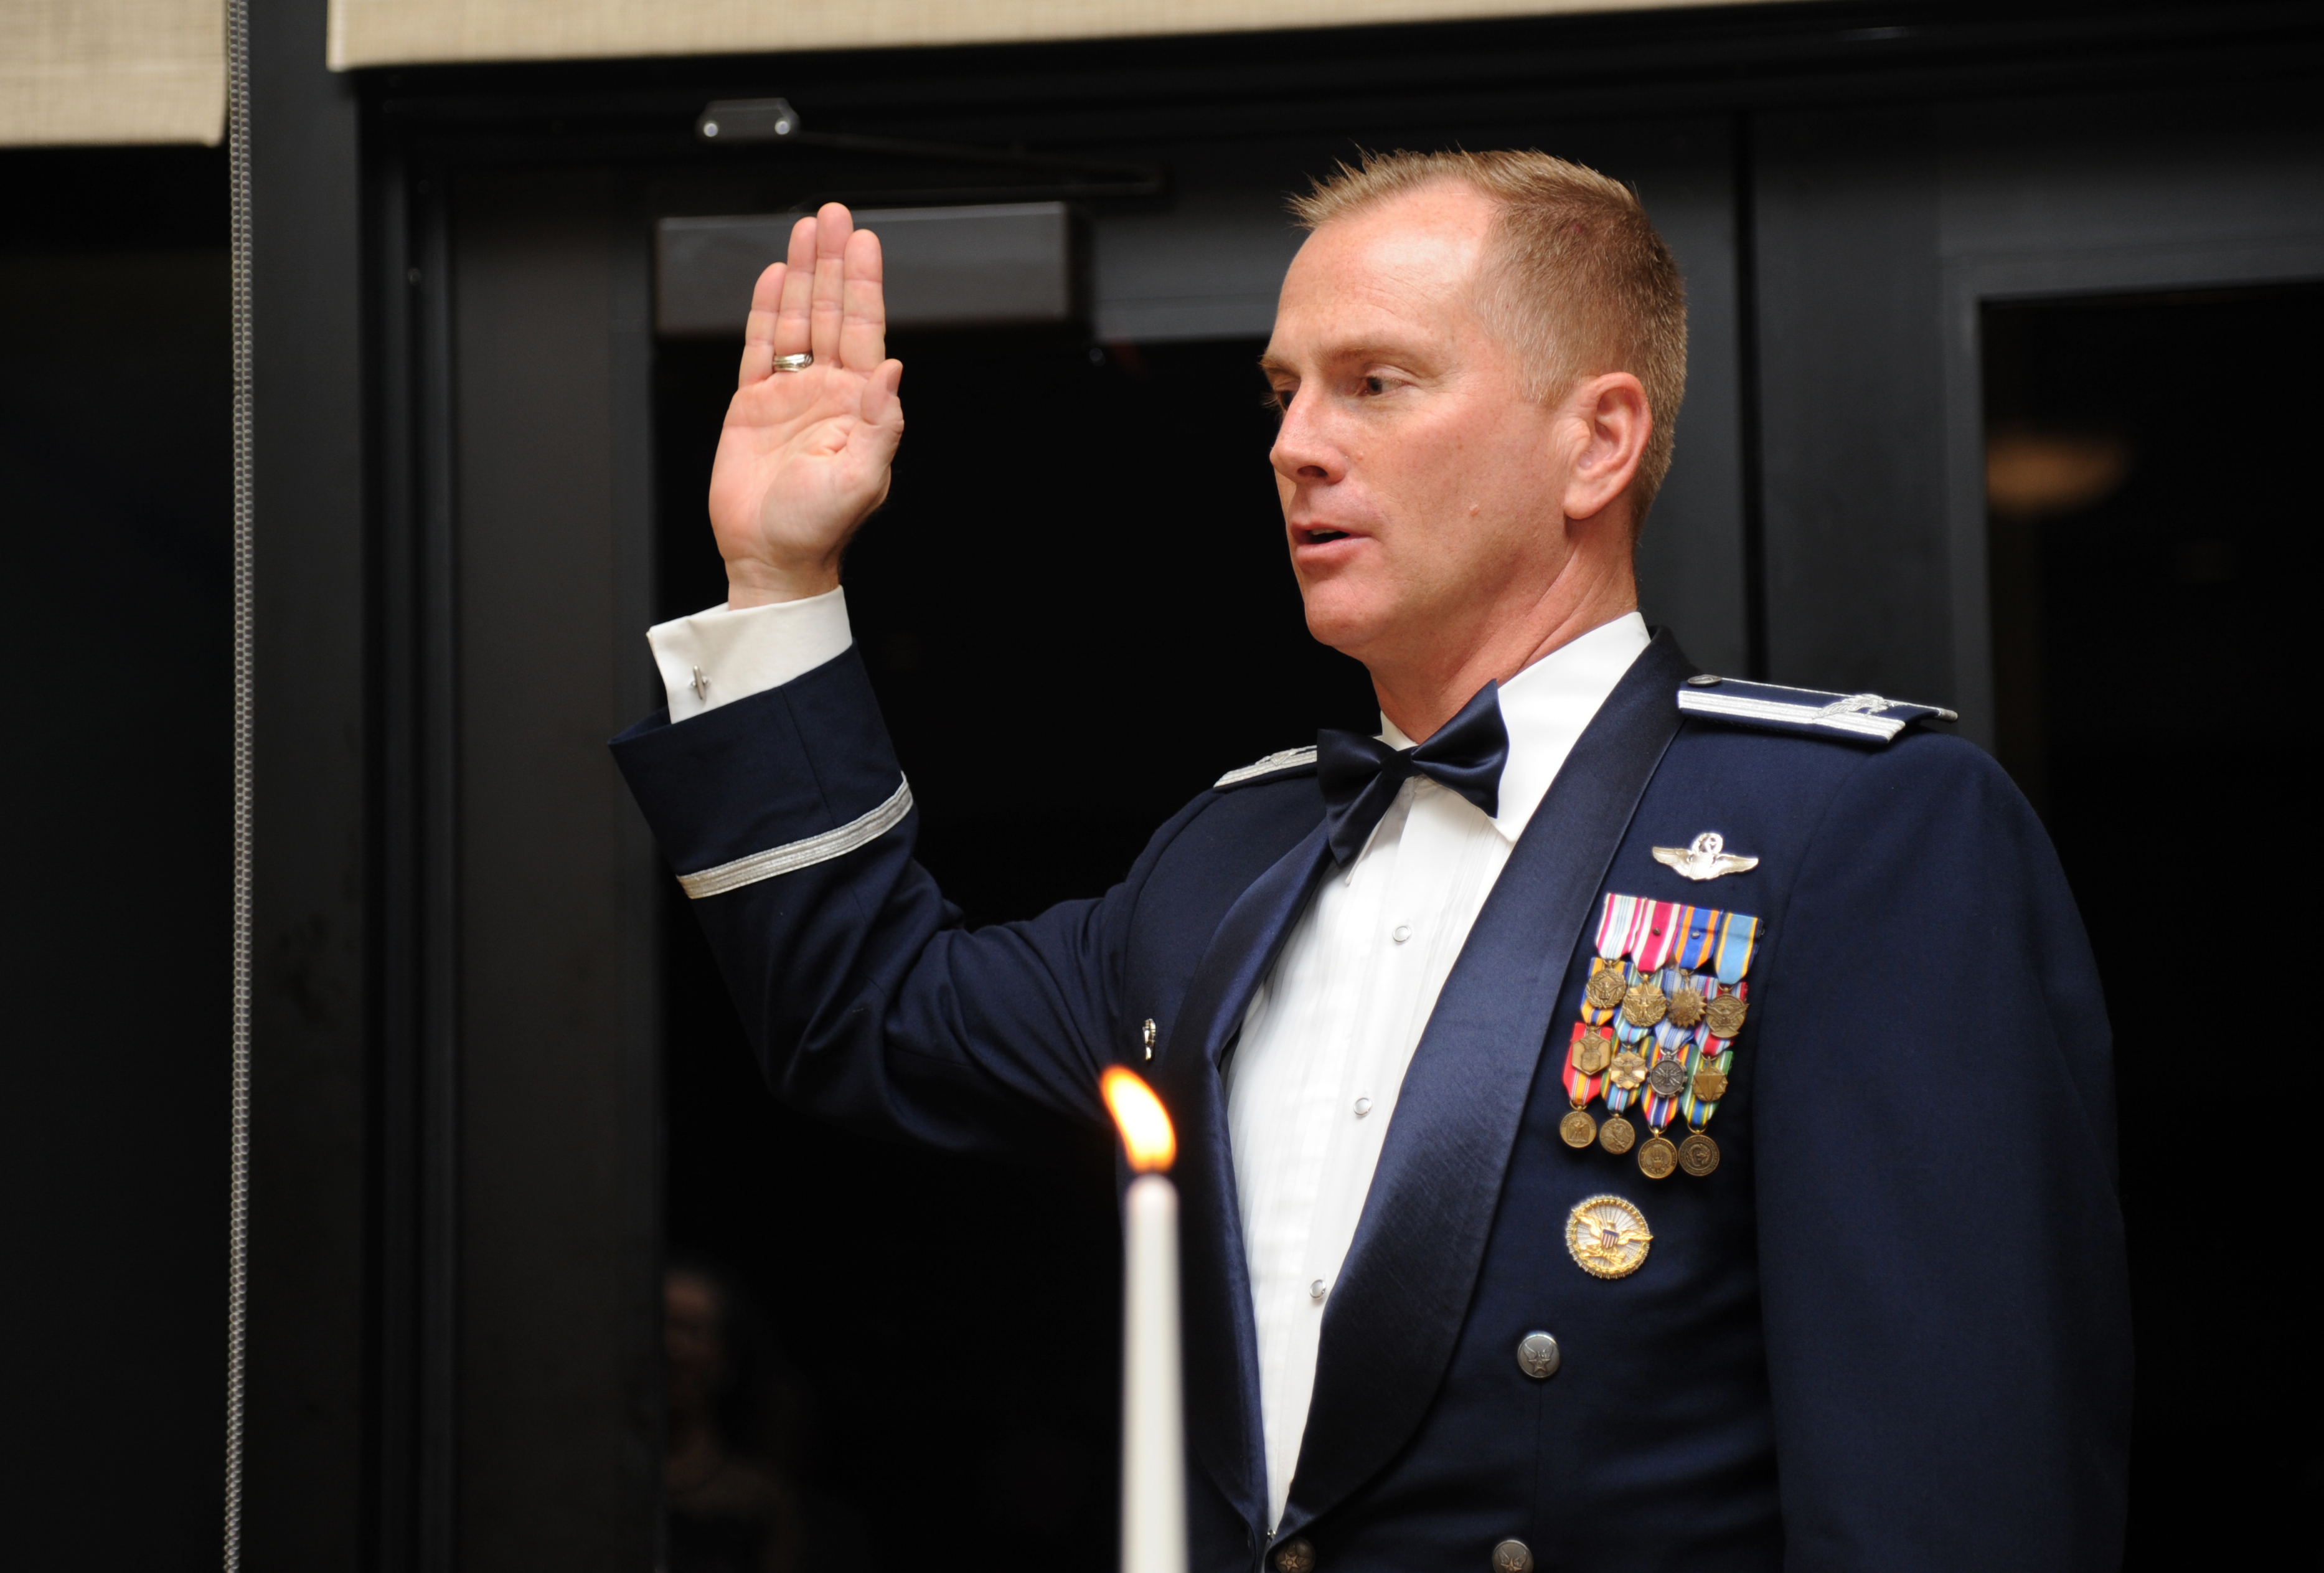 order non commissioned officer and lawful orders 1stsgt said something about the difference between a lawful order and  article  91—insubordinate conduct toward warrant officer, nco, or po.